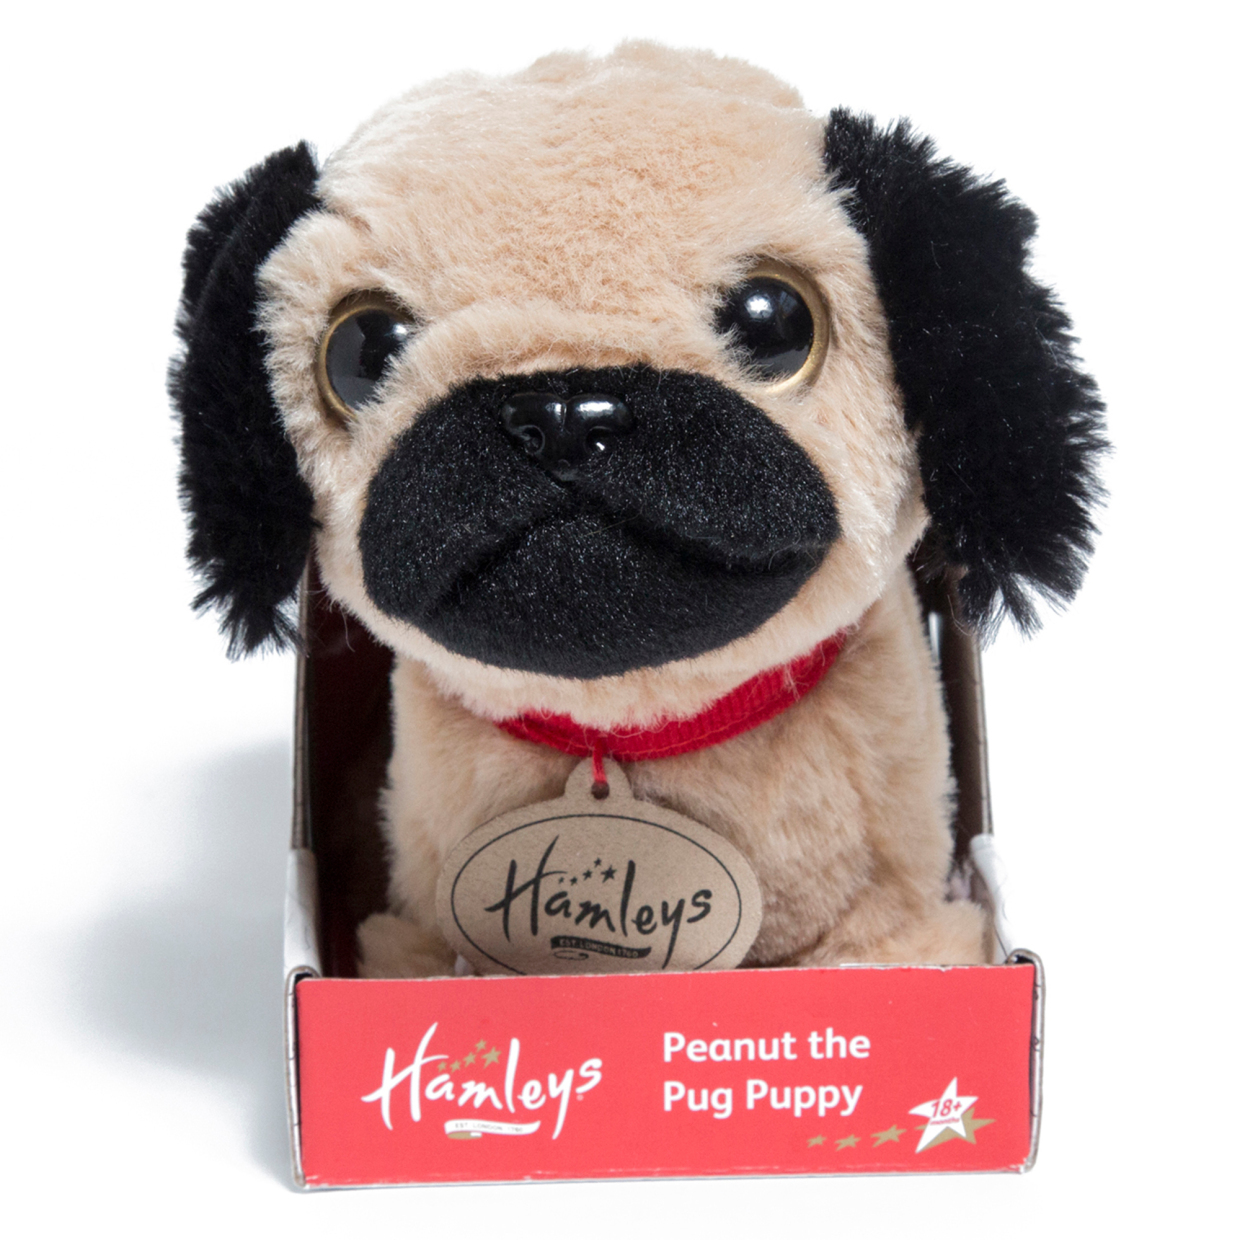 You can buy Peanut the pug from Hamleys